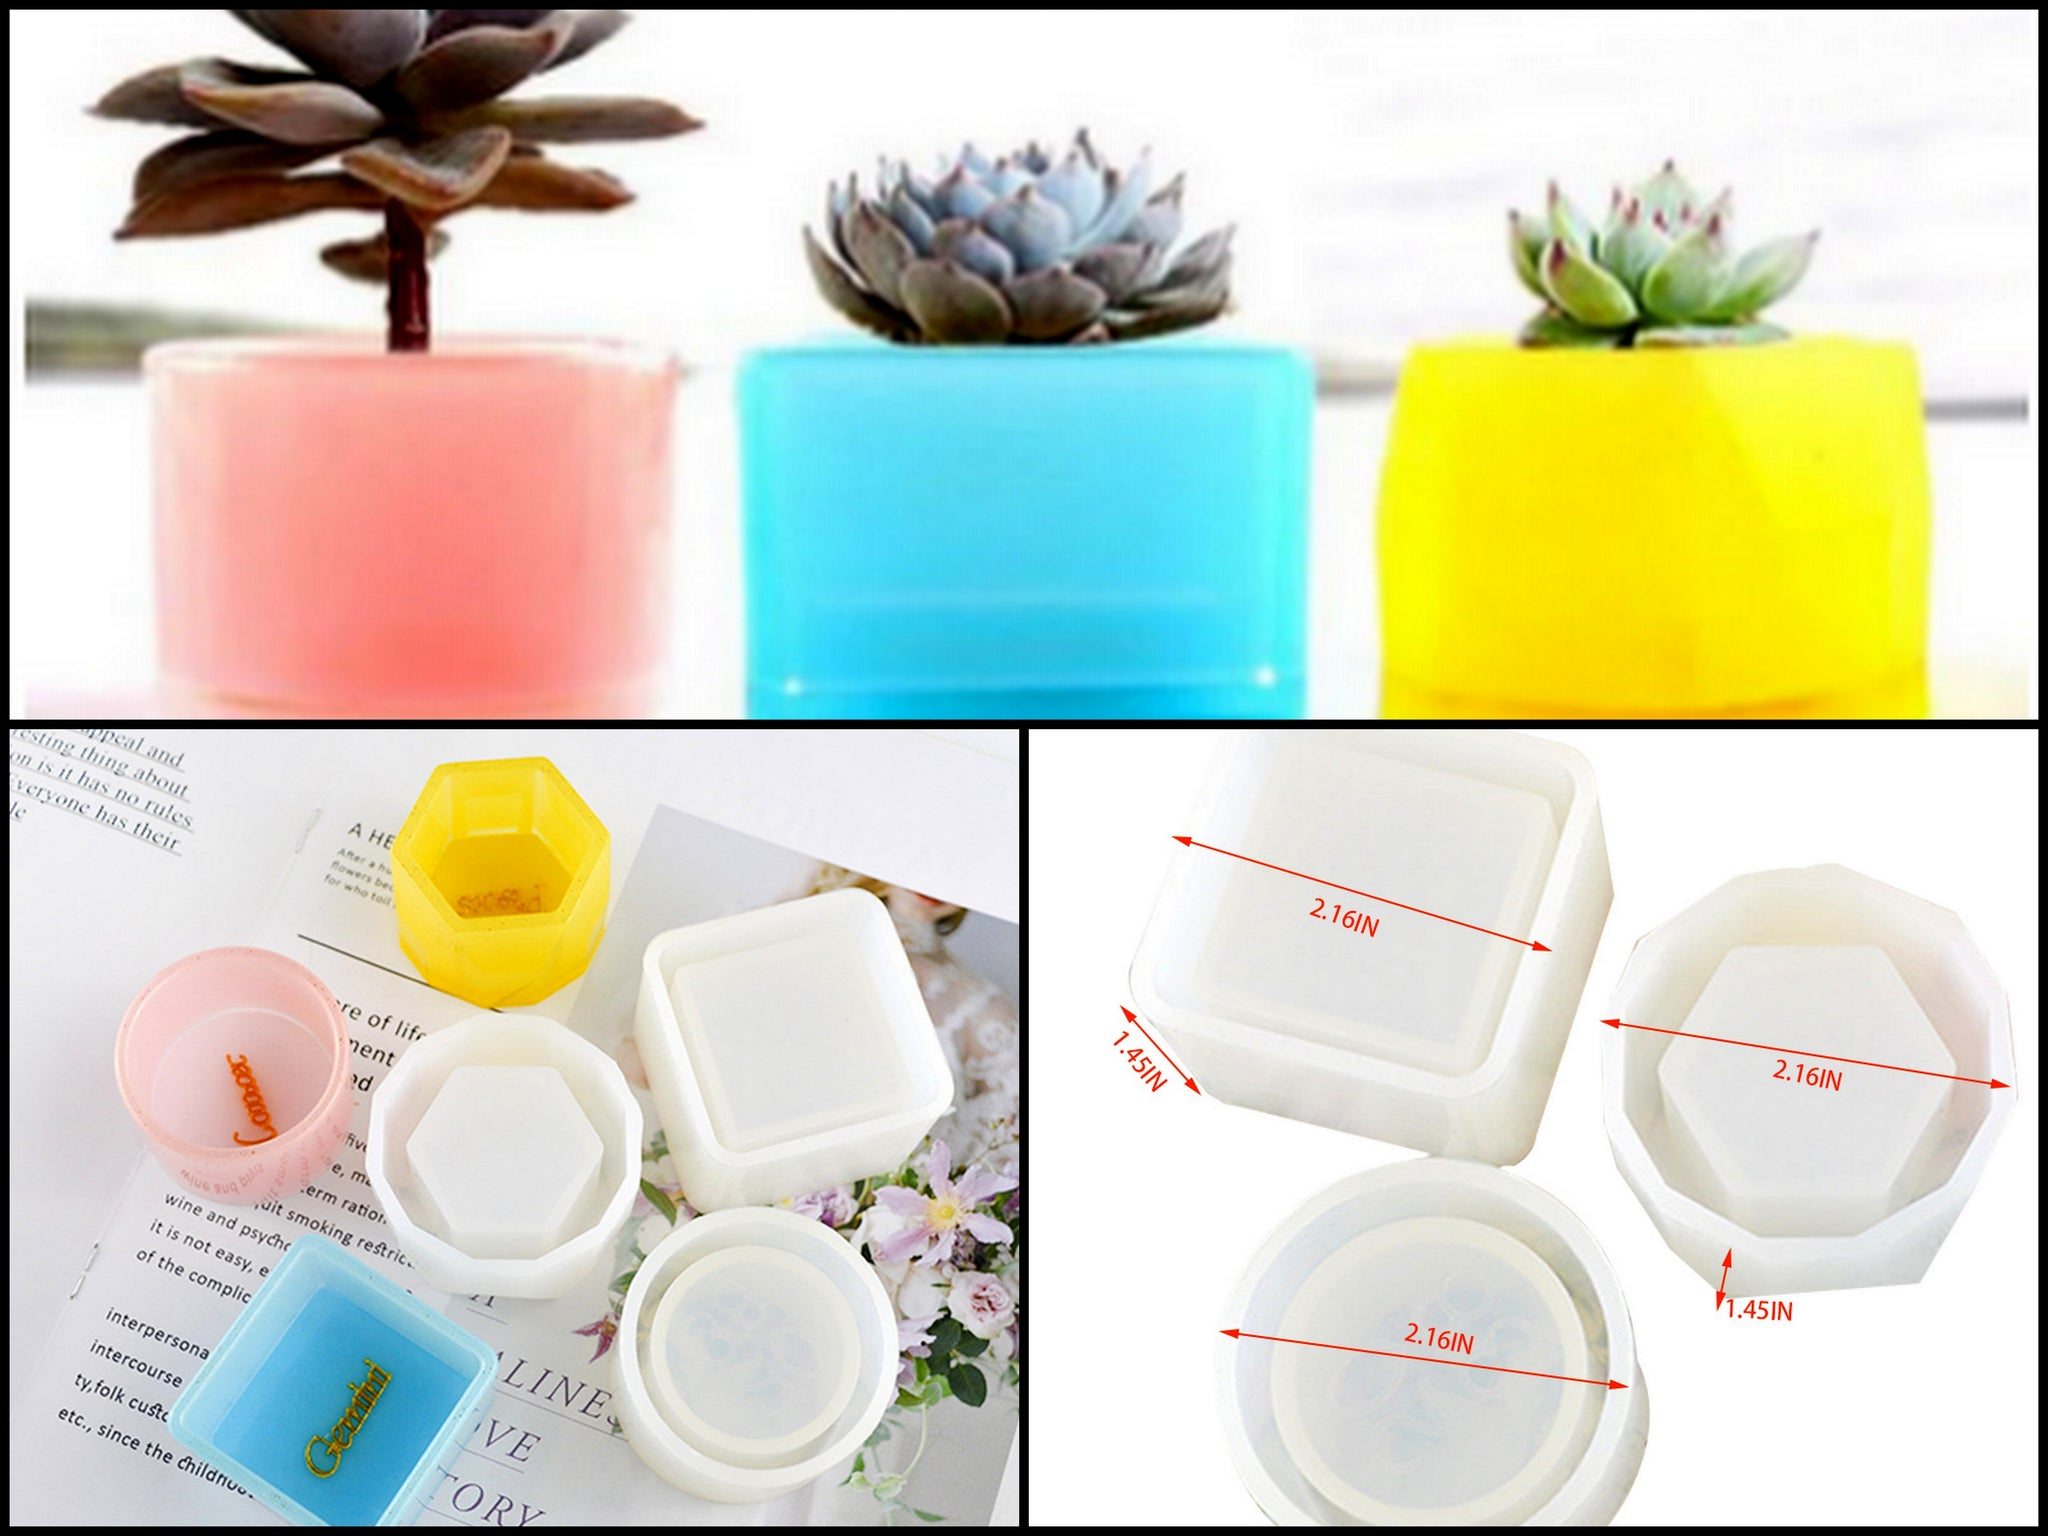 3 Pieces Flower Pot Plant holder combo Small Mould Silicone Mold for casting UV Resin,Epoxy resin and concrete